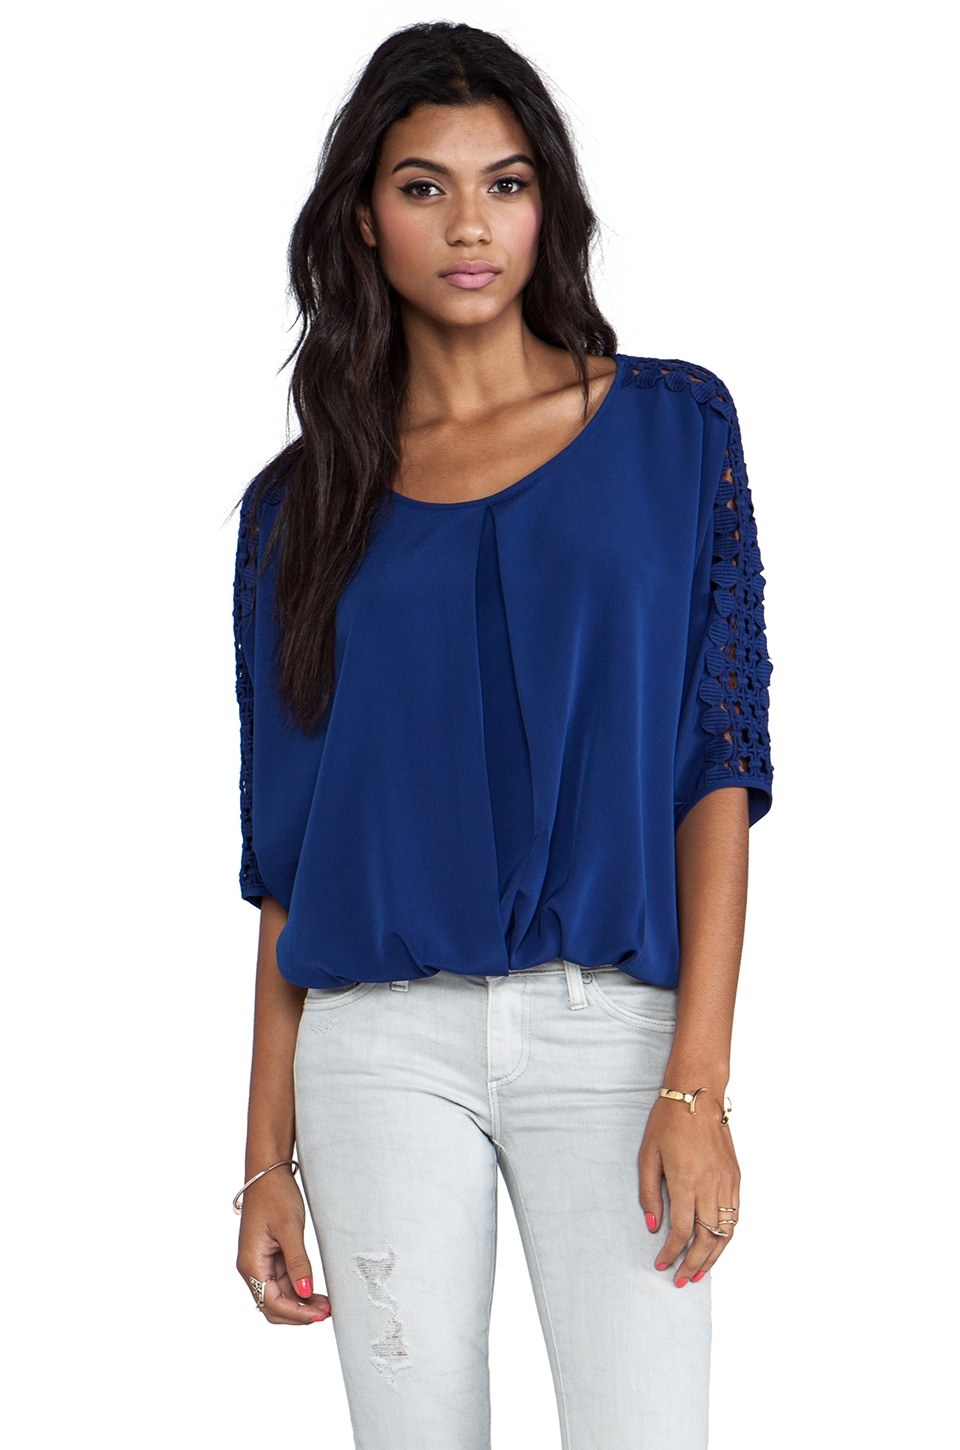 VAVA by Joy Han Elena Blouse in Navy